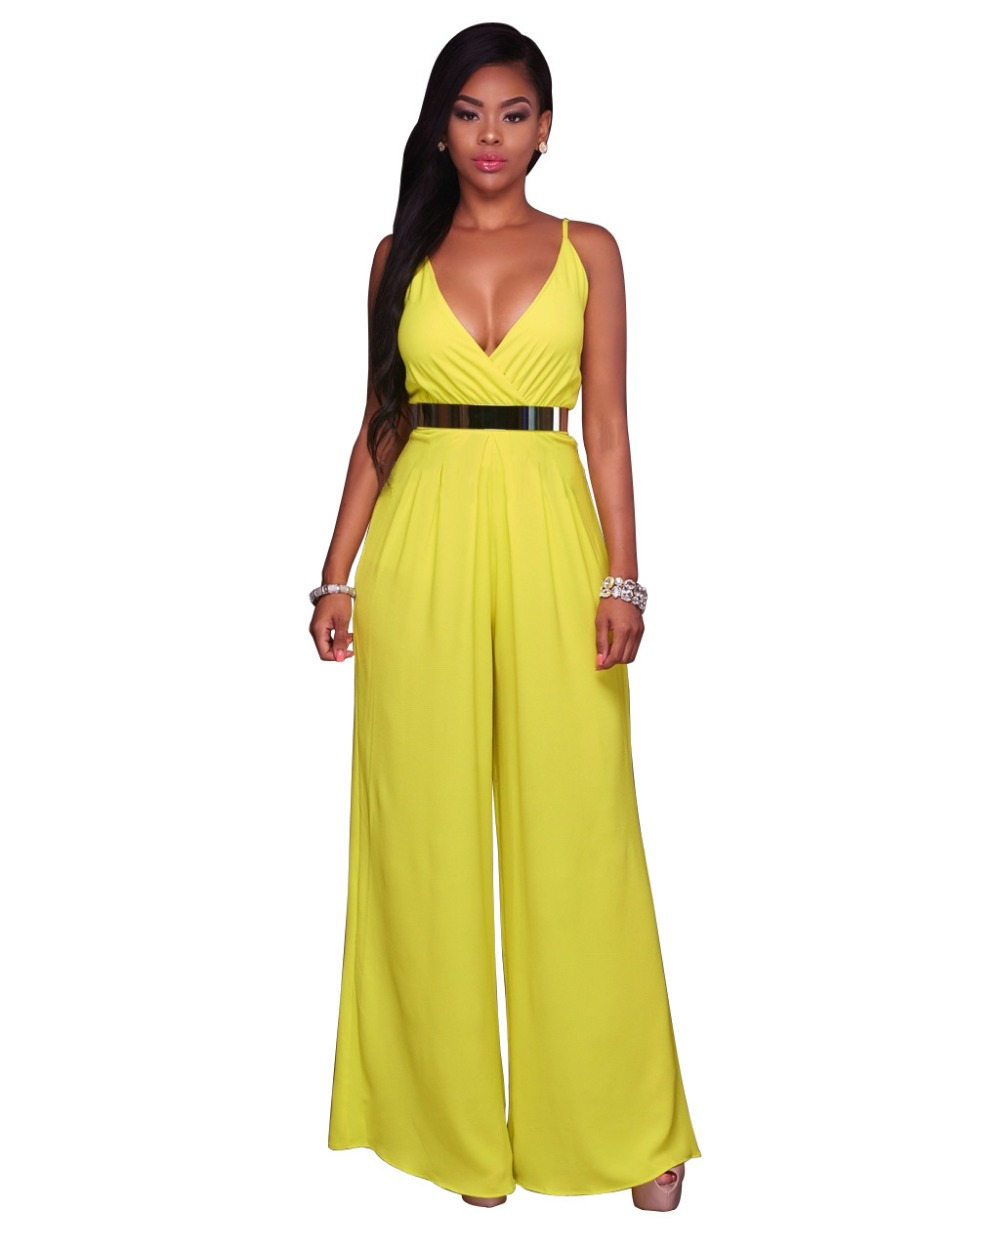 2017 Summer Deep V Neck Club Wear Overalls For Women Jumpsuits Sling Wide Leg Loose Long Rompers Pants Yellow Orange Red